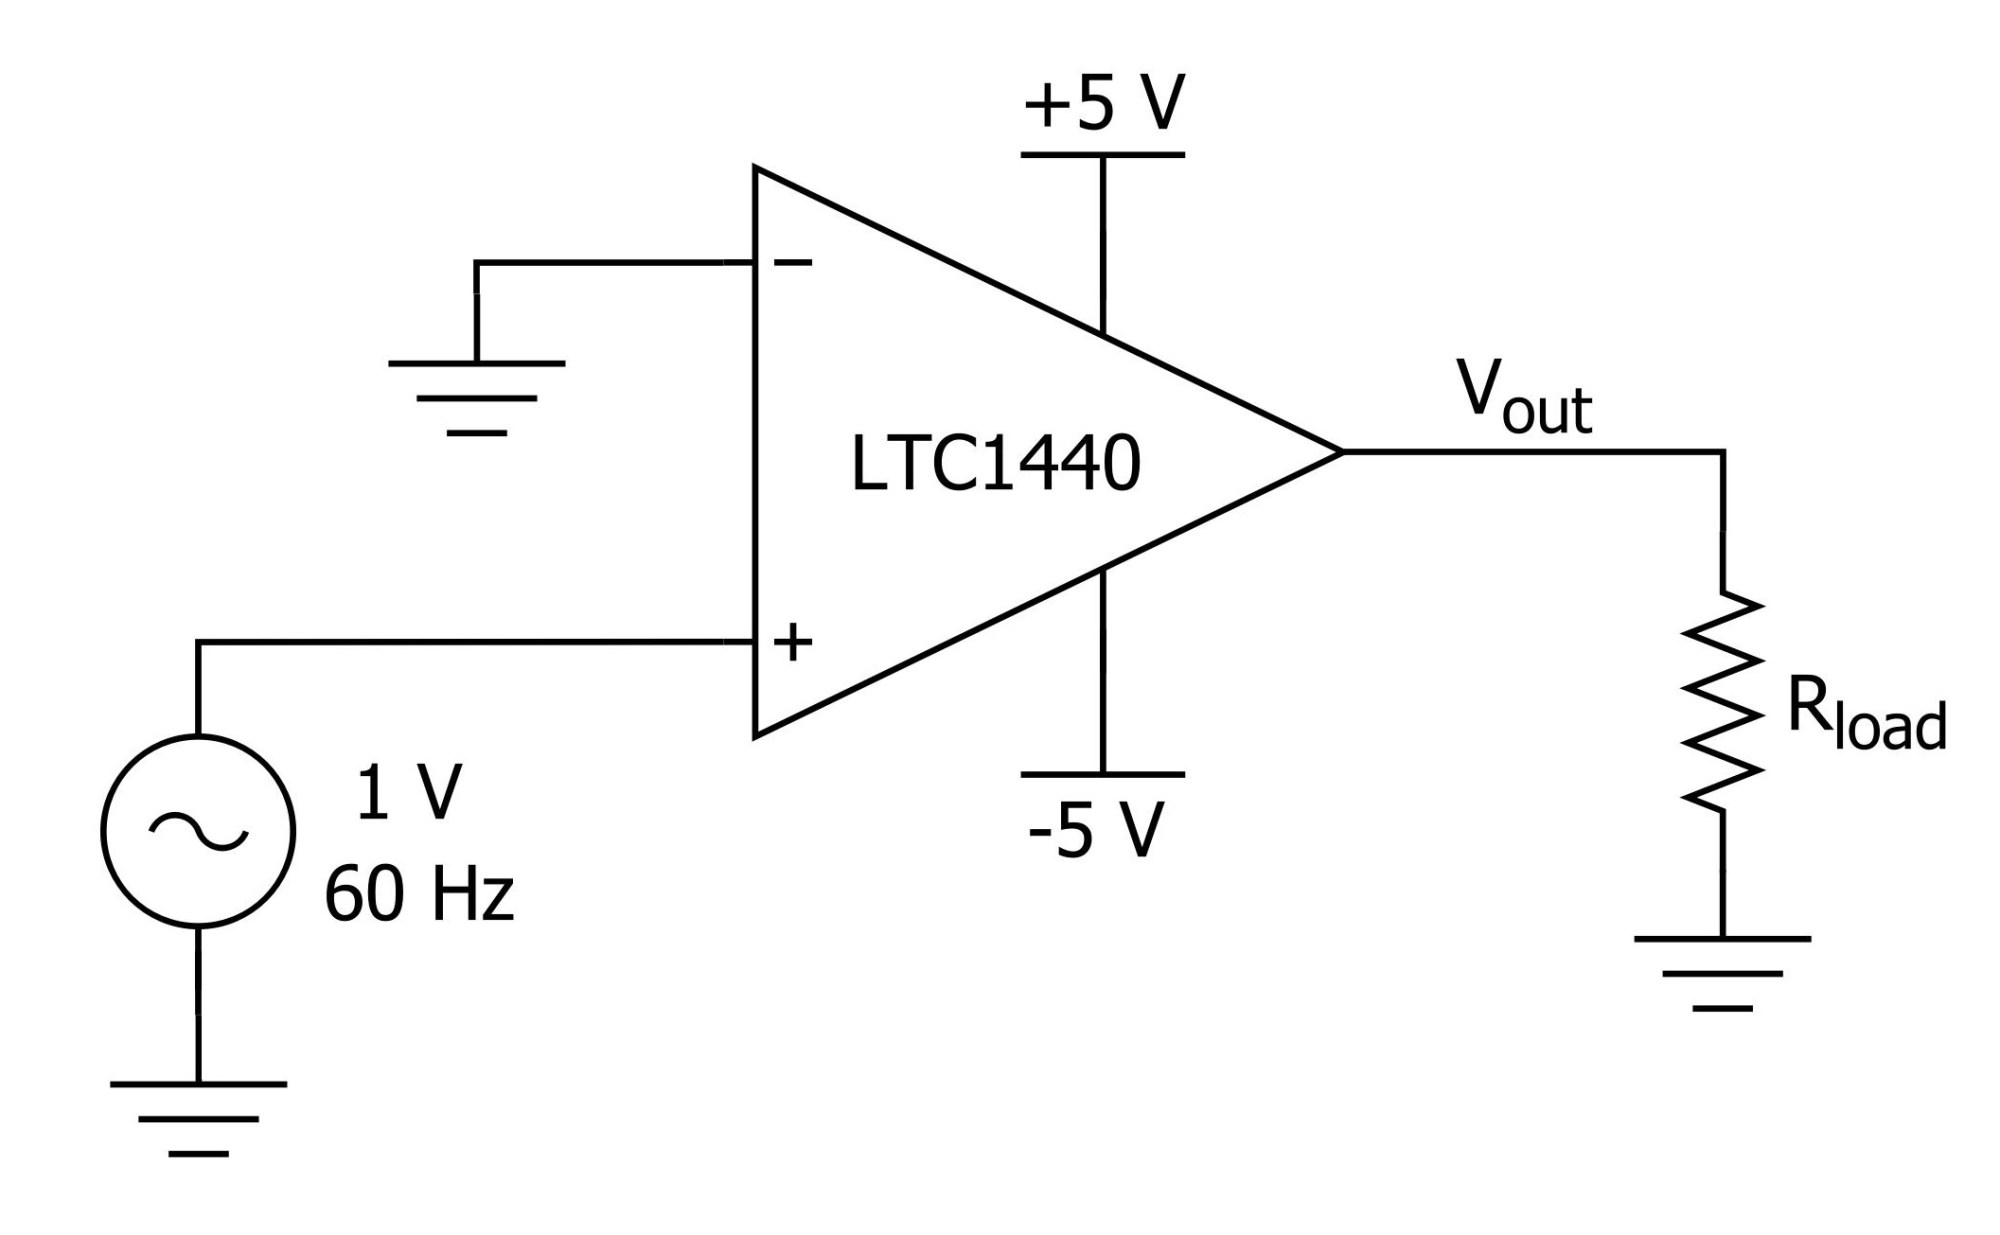 hight resolution of hysteresis comparator circuits